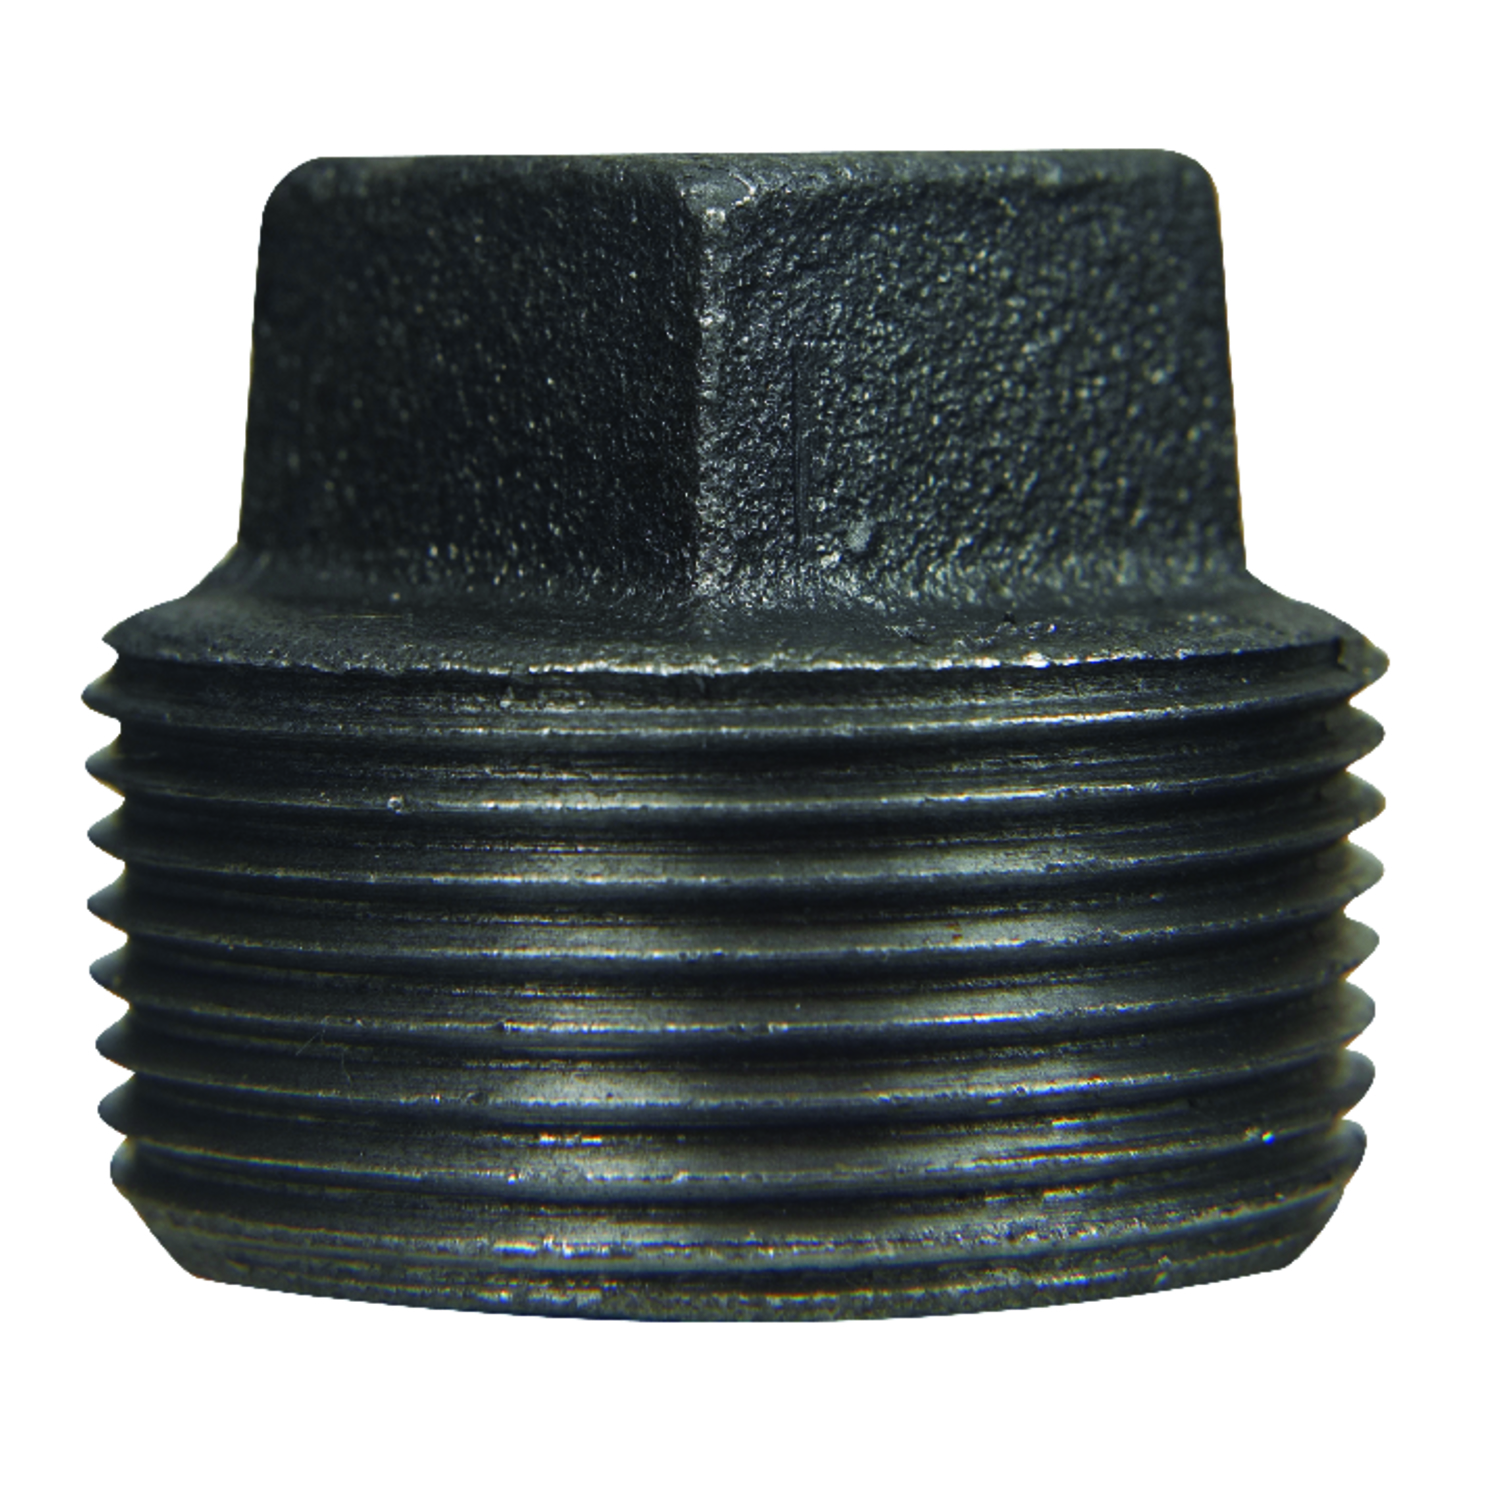 B & K  1/2 in. MPT   Black  Malleable Iron  Plug